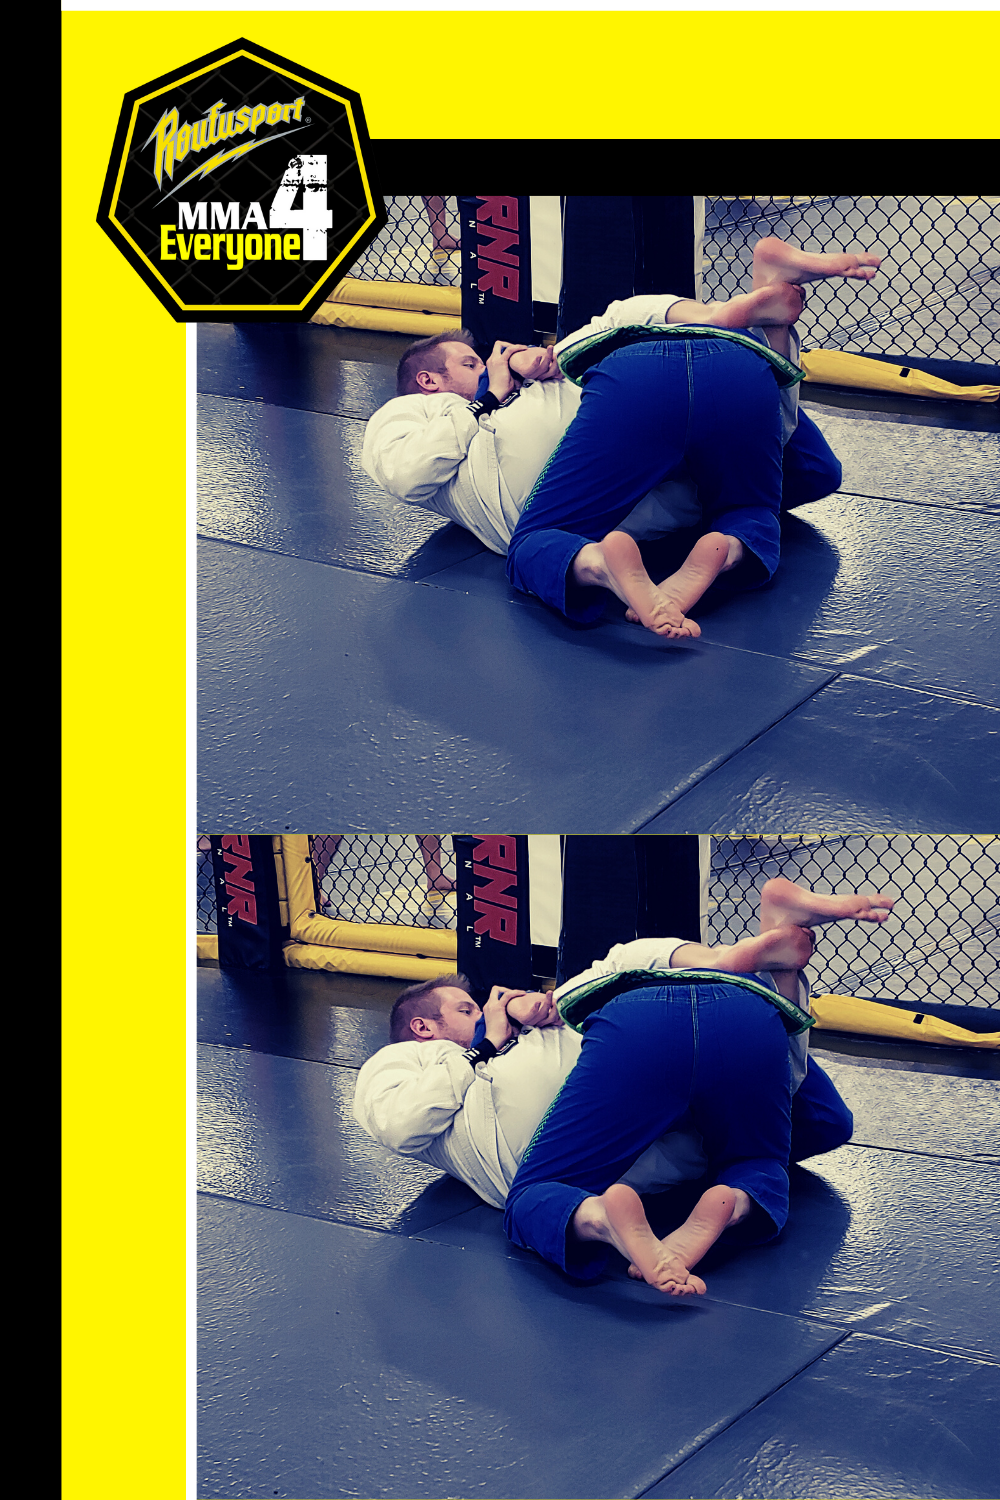 Wisconsin Mma Gym And Training Mma Gym Martial Arts Mixed Martial Arts